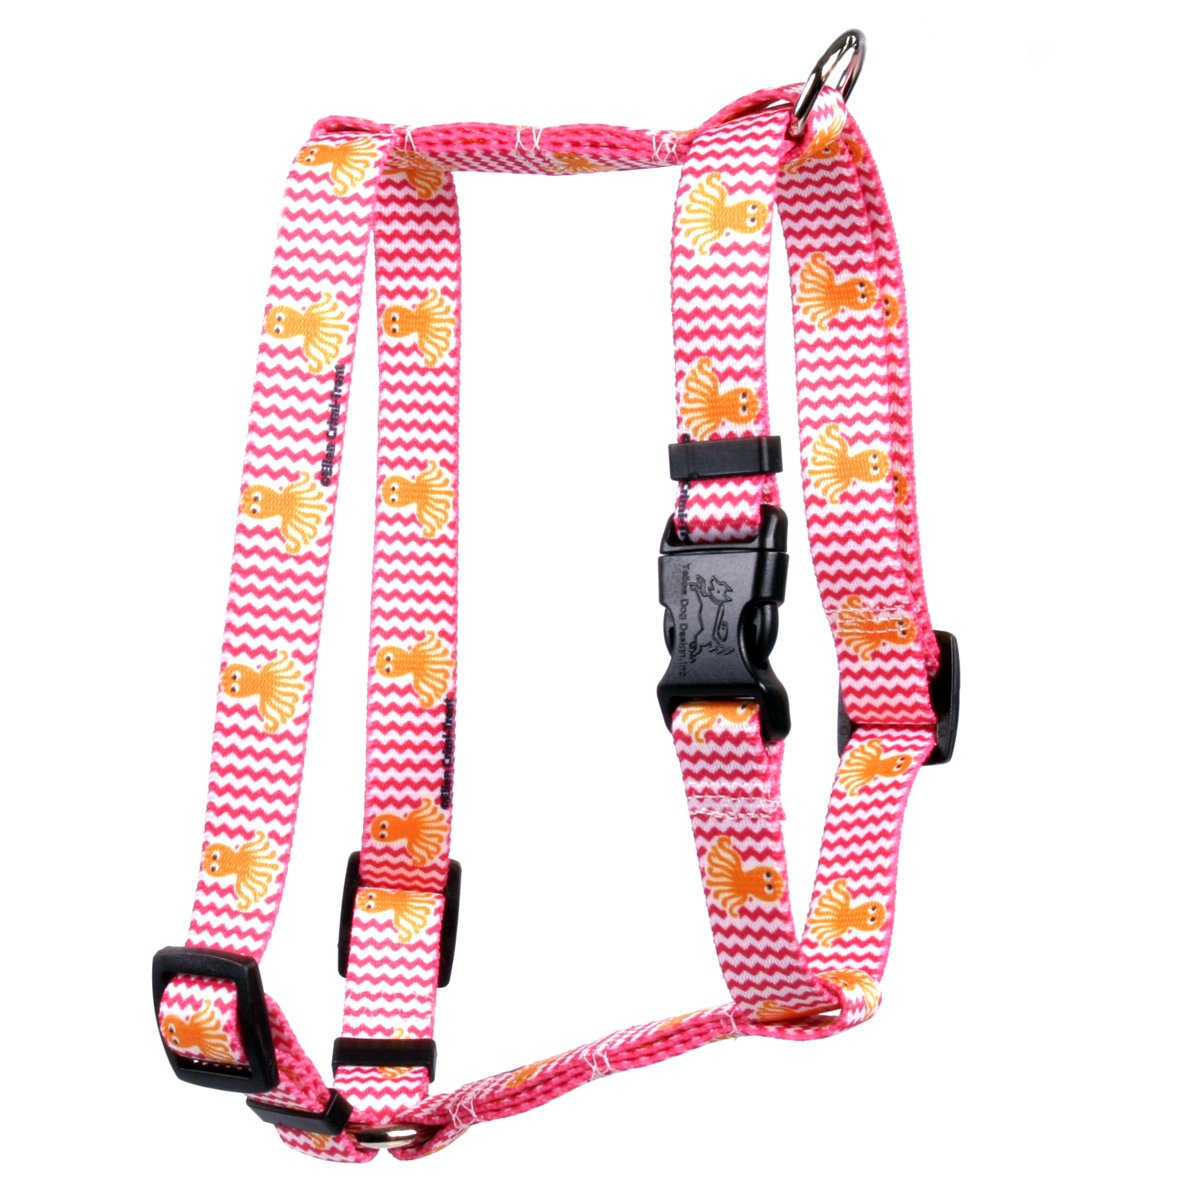 Large 20\ Yellow Dog Design Playful Octopus Roman Style H  Dog Harness-Large-1  and fits Chest 20 to 28